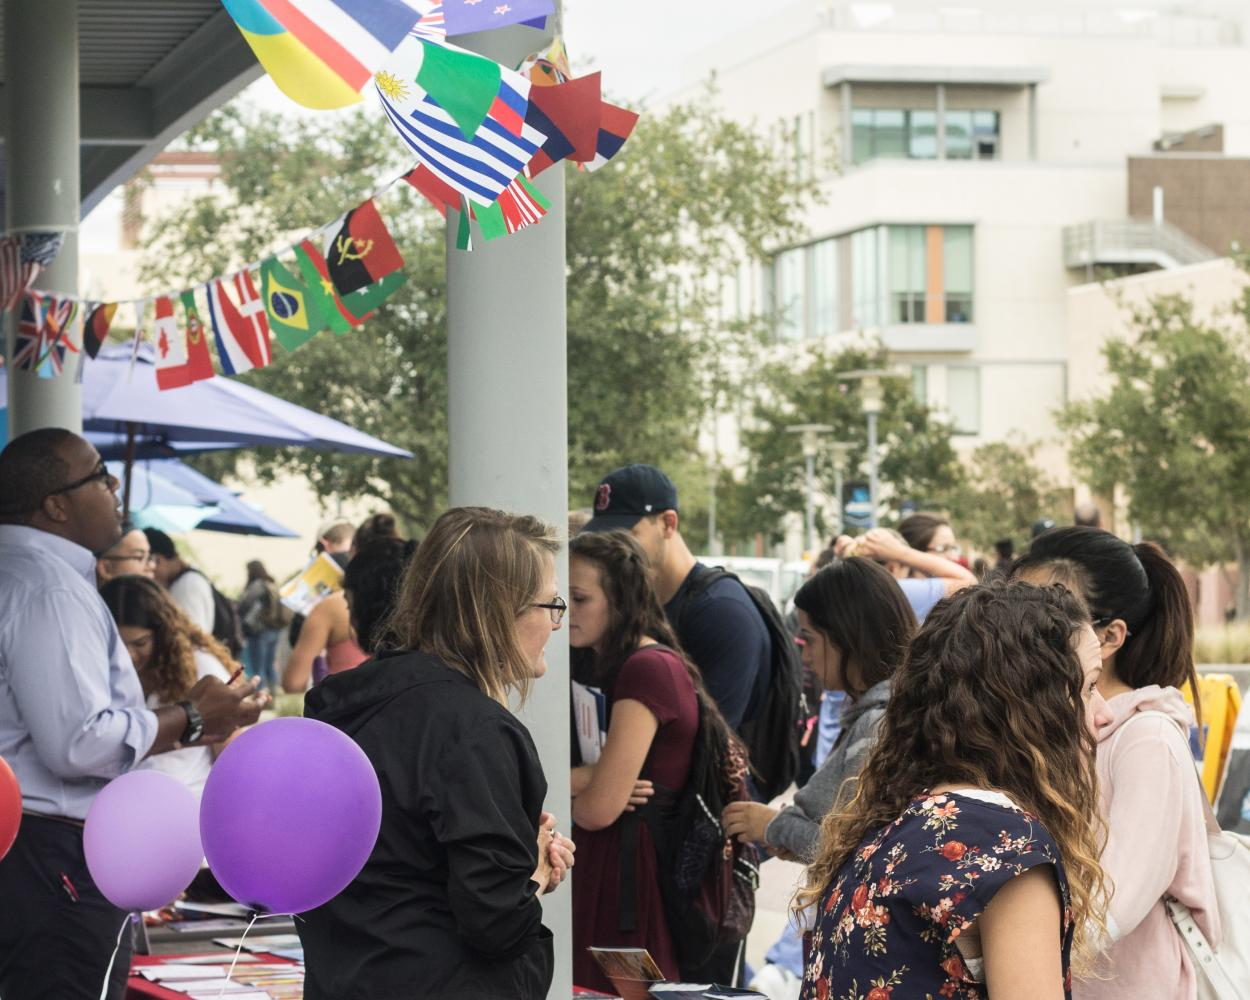 Students of CSUSM gather to obtain information about study abroad opportunities.